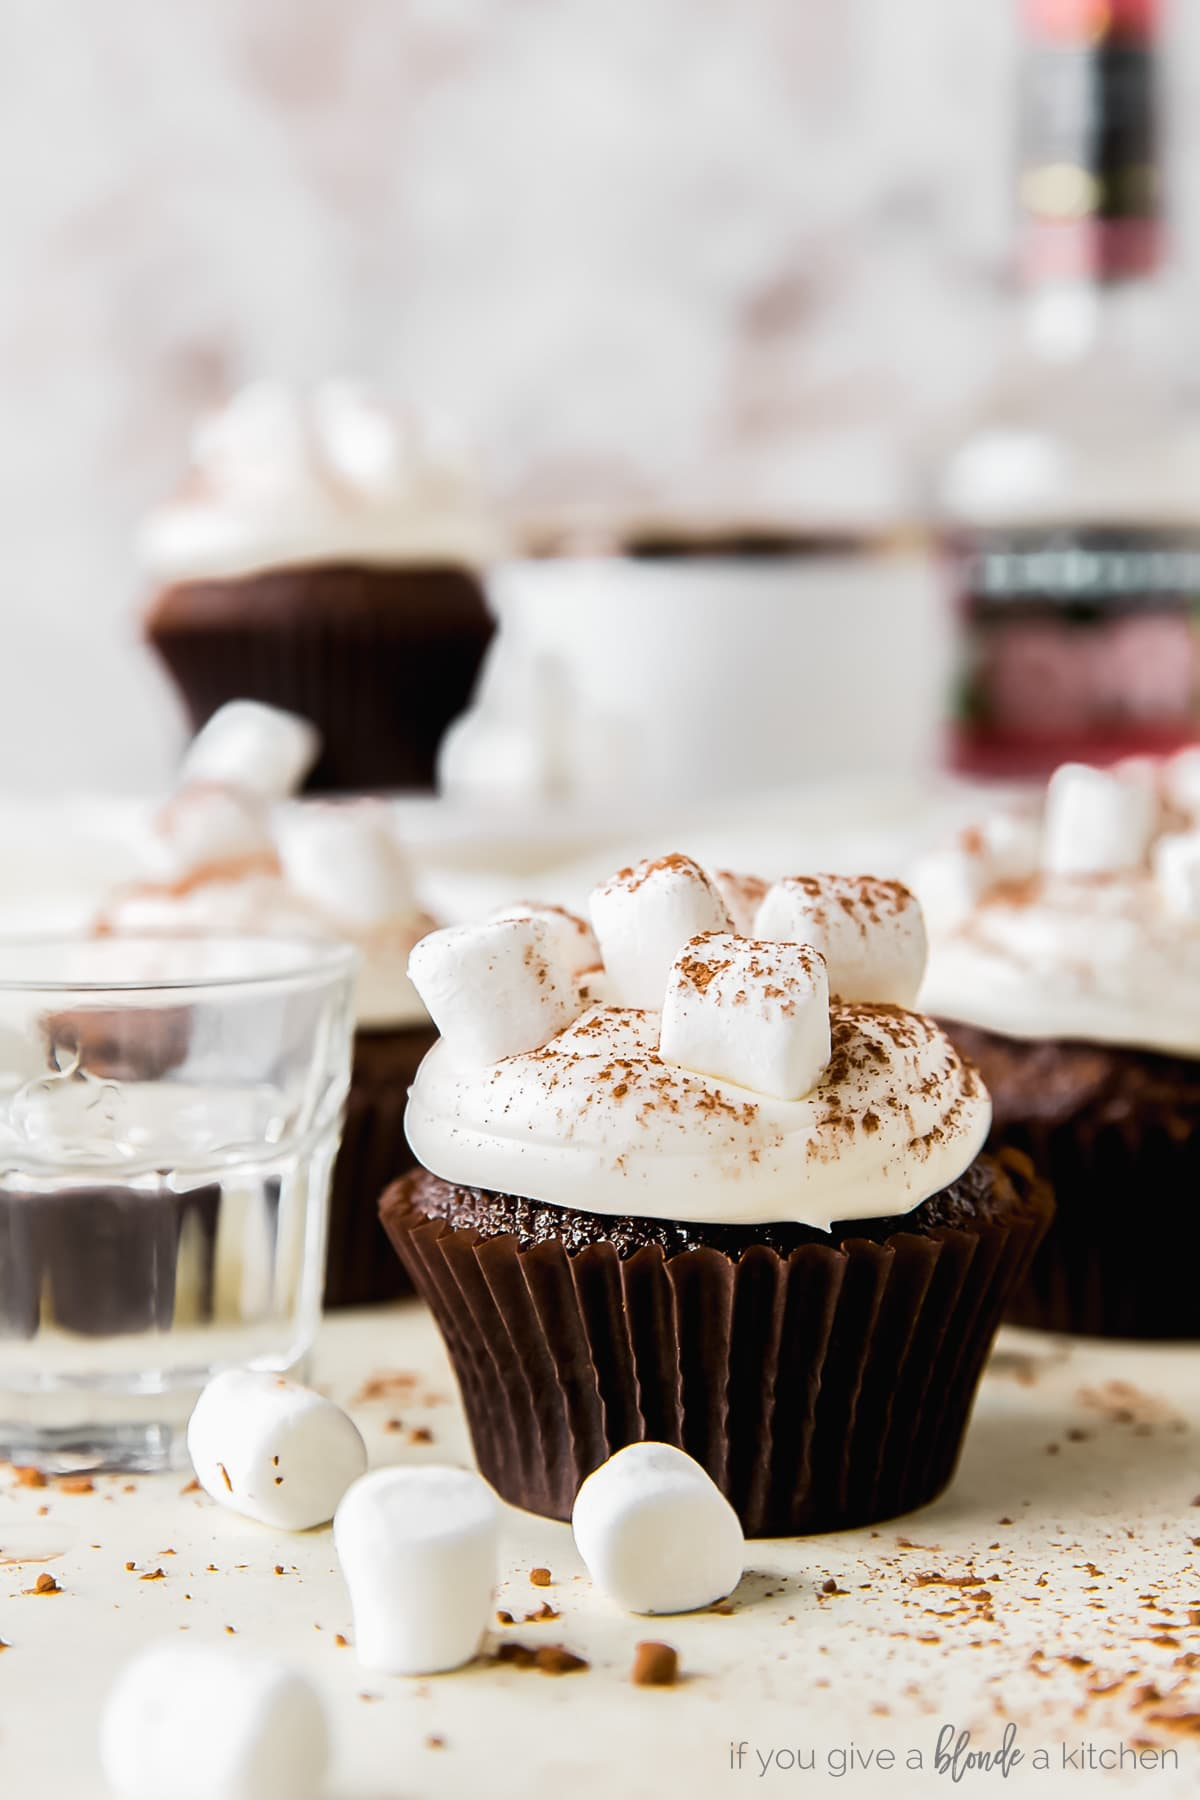 hot cocoa cupcake topped with marshmallow frosting, next to shot glass of peppermint schnapps